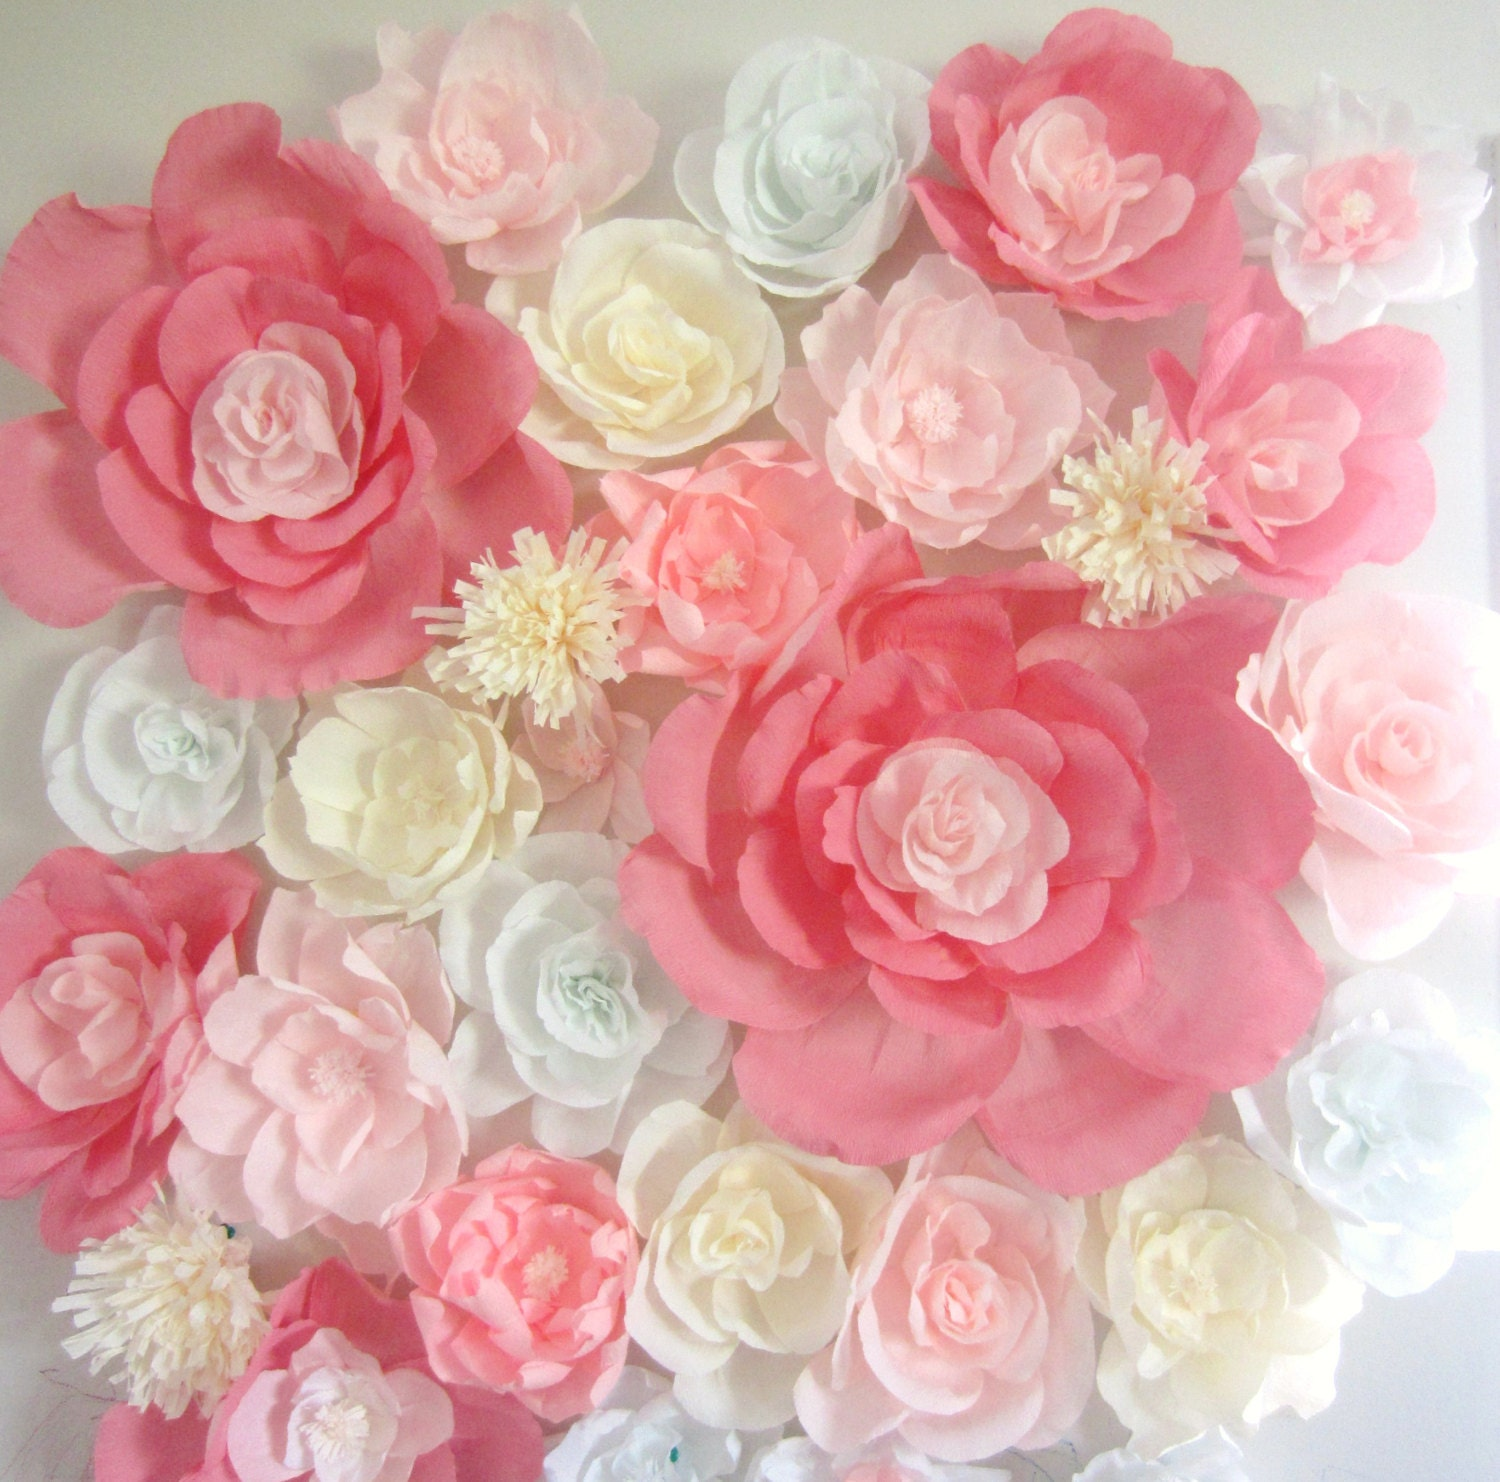 Giant paper flower wall display 4ft x 4ft wedding backdrop for Flower decoration made of paper